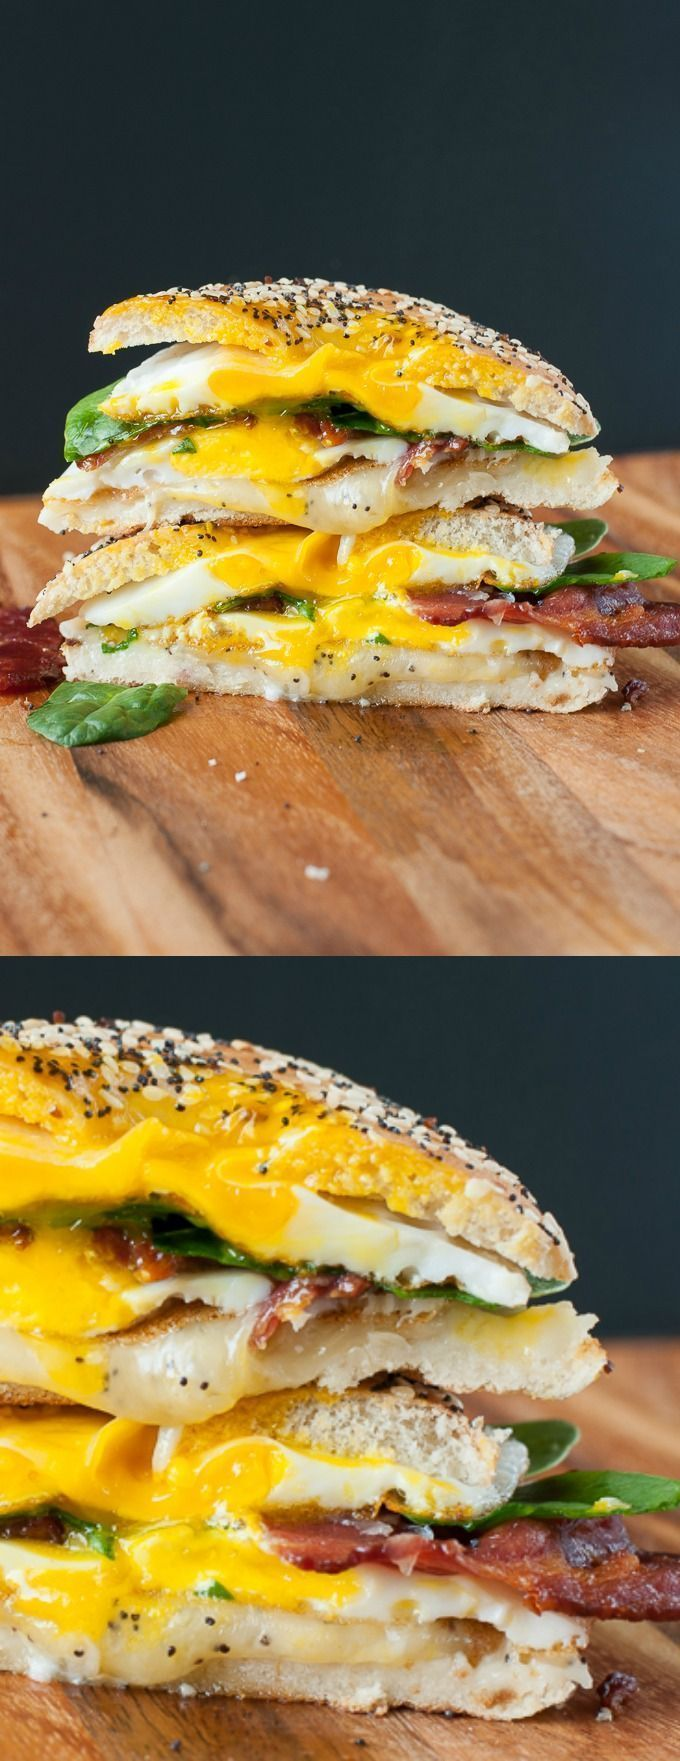 Everything Bagel Grilled Cheese Breakfast Sandwich :: Breakfast just got really, really, ridiculously AWESOME!